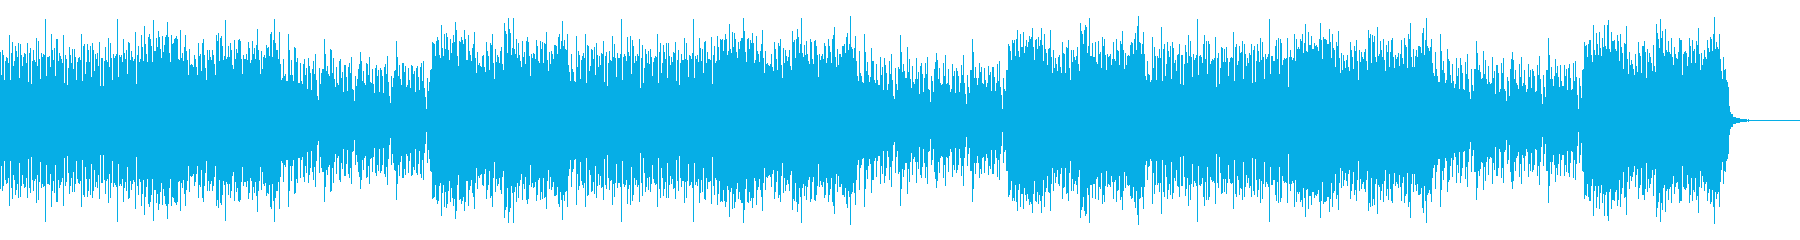 Chiptune for in-game battle scenes's reproduced waveform